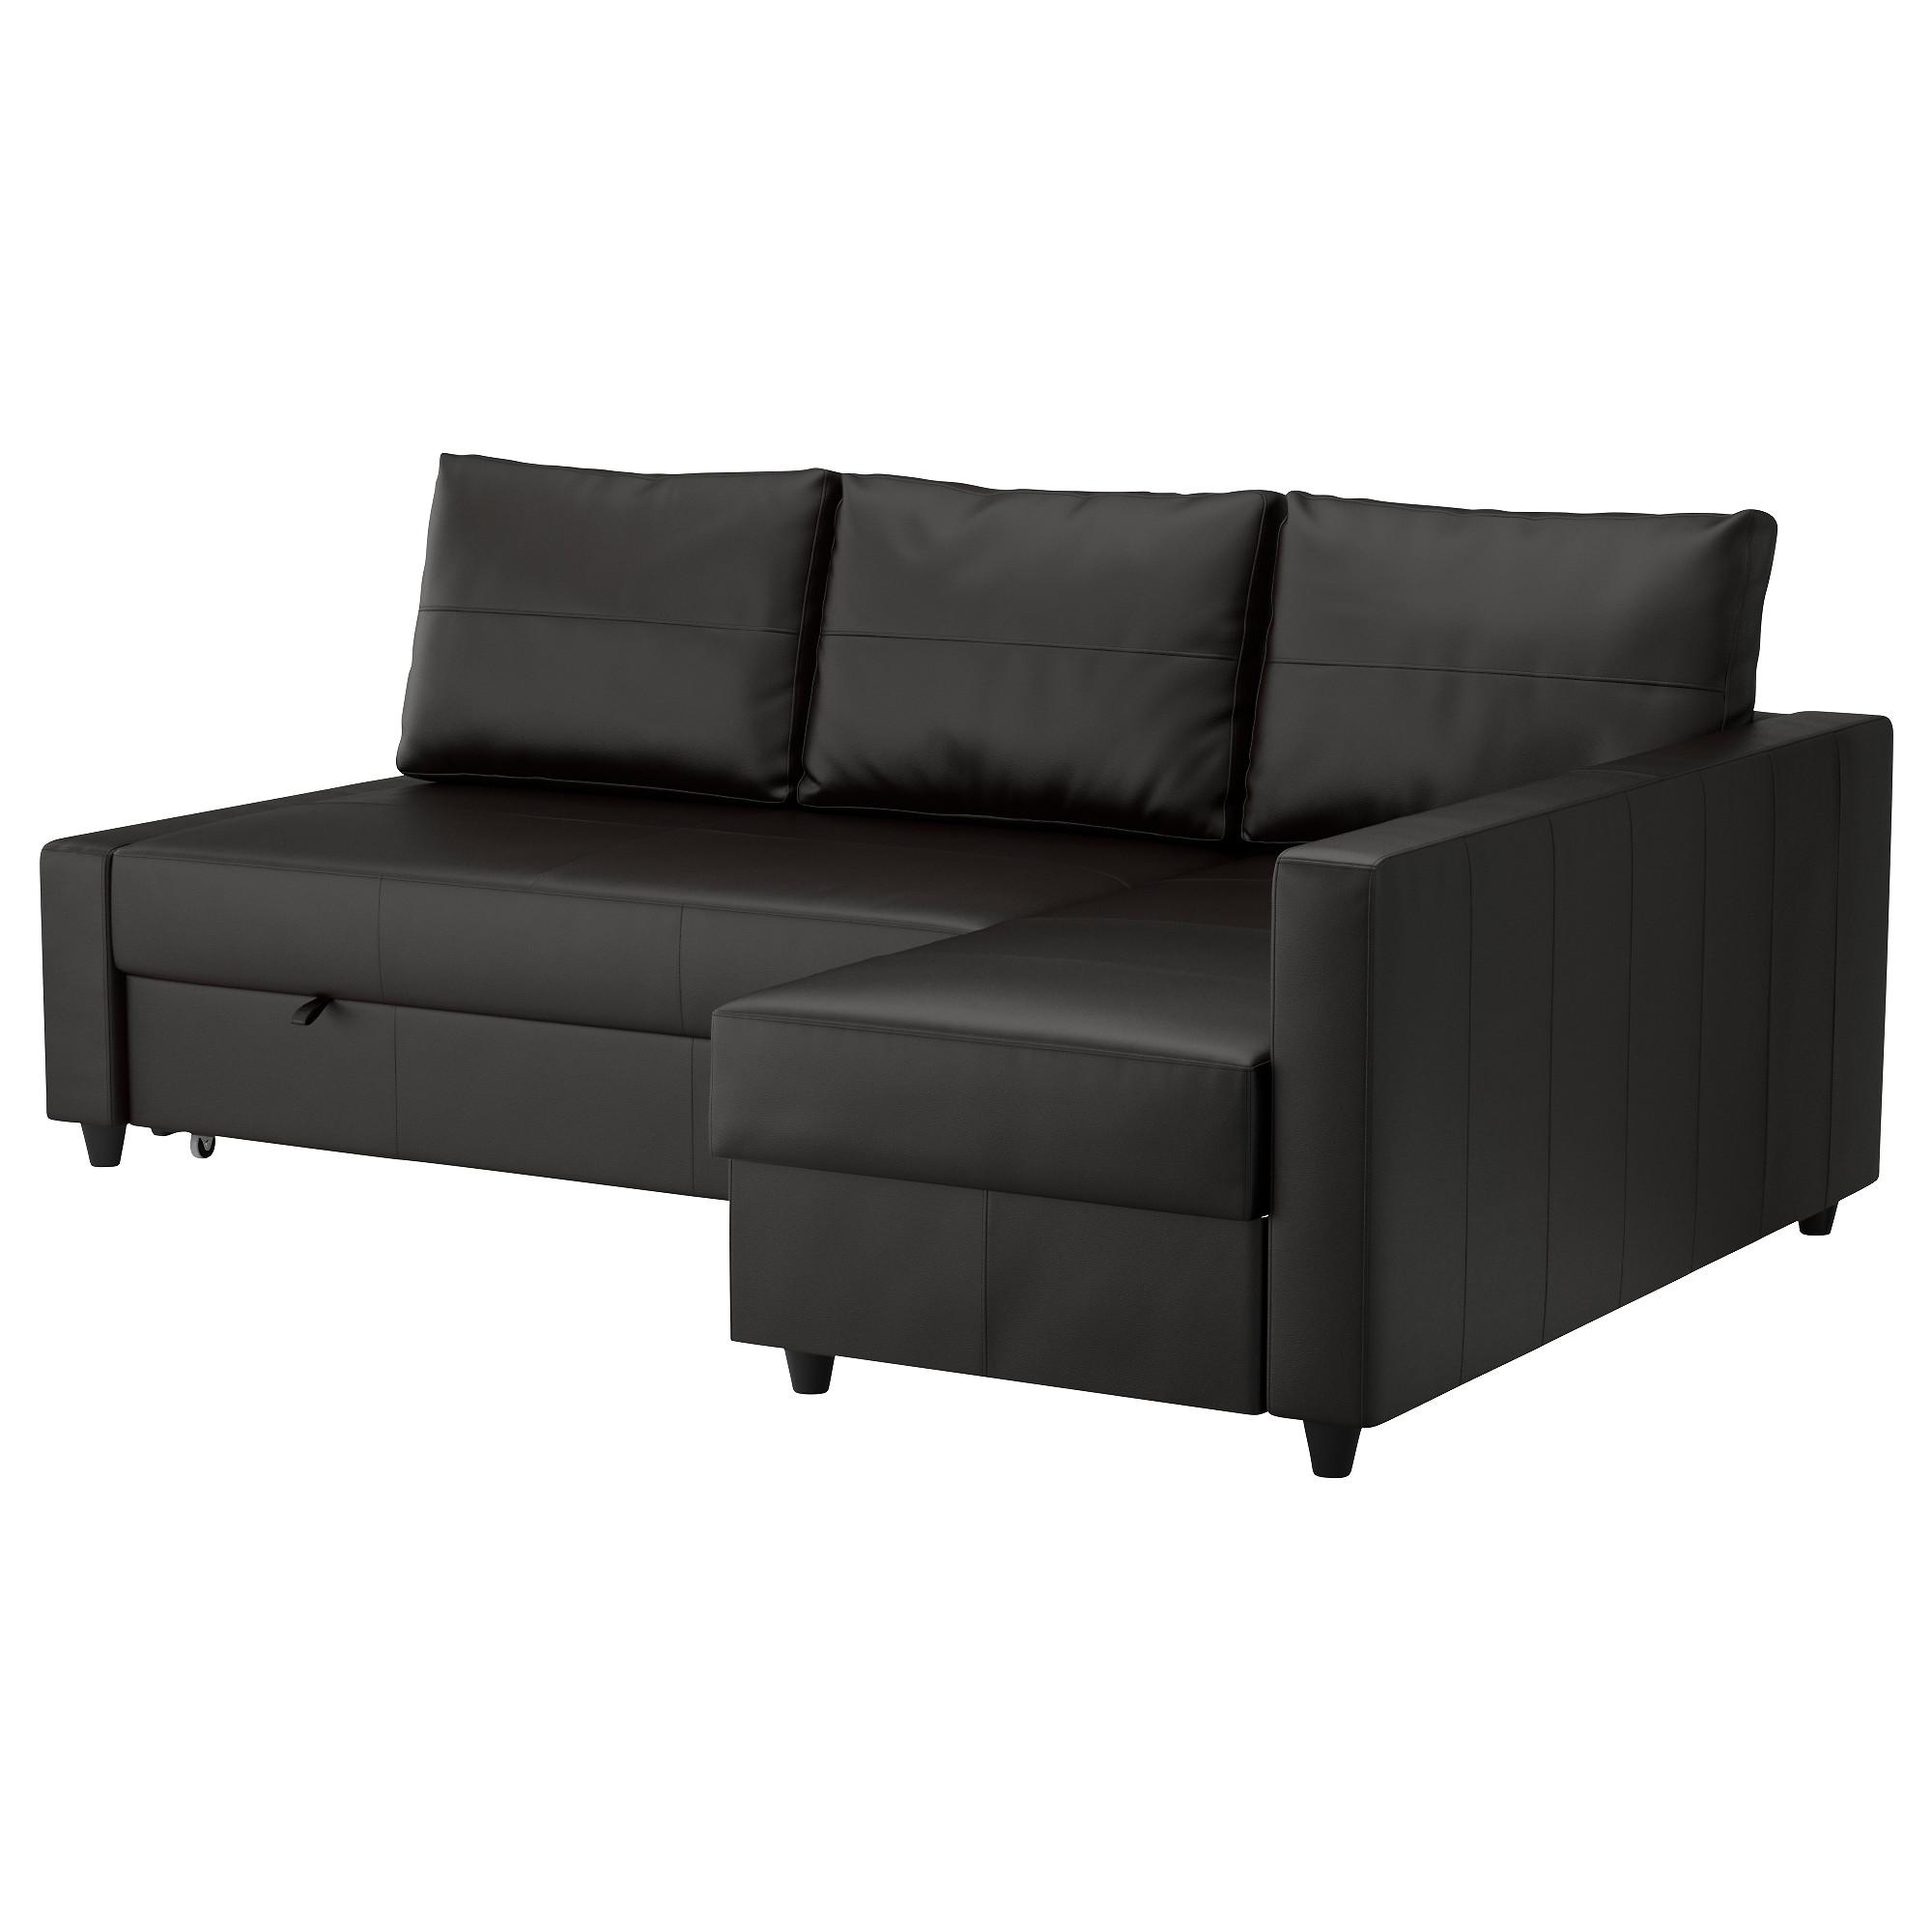 Friheten Corner Sofa Bed With Storage Bomstad Black – Ikea With Regard To Ikea Chaise Lounge Sofa (Image 8 of 20)